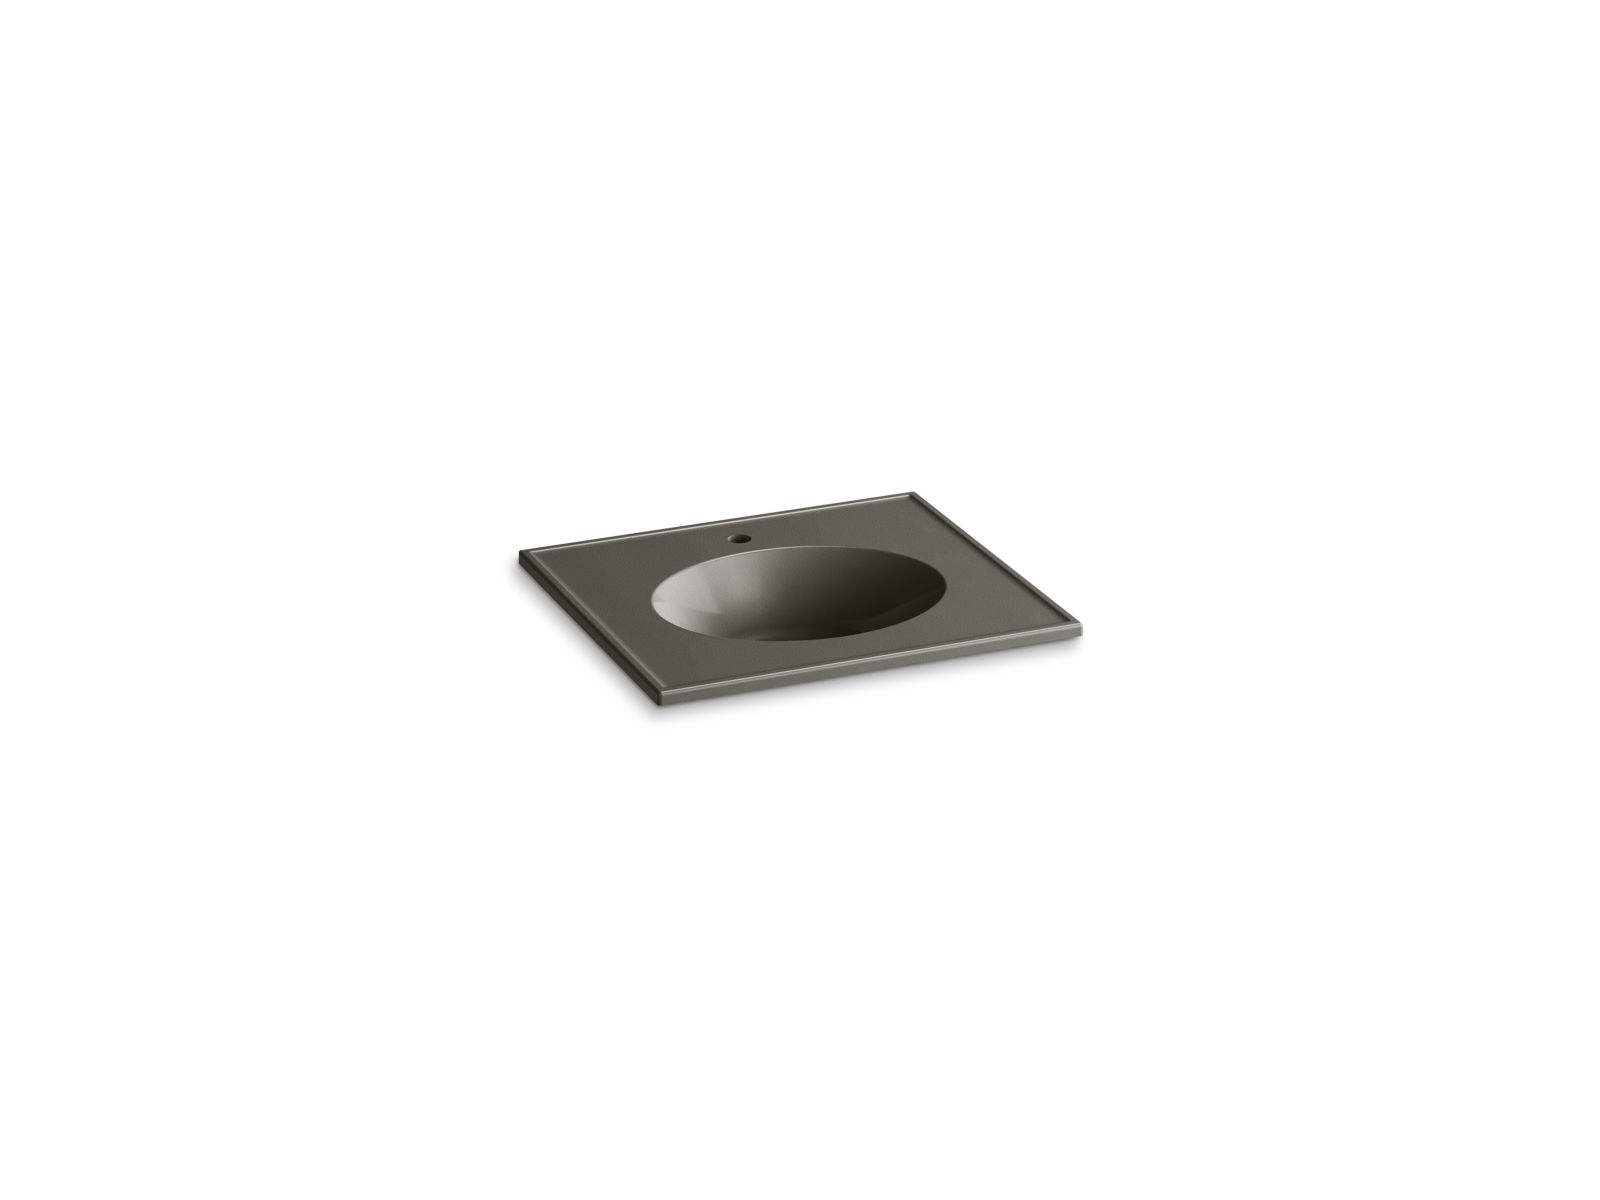 "Kohler Ceramic/Impressions™ K-2791-1-G86 25"" oval vanity-top bathroom sink with single faucet hole Cashmere Impressions"